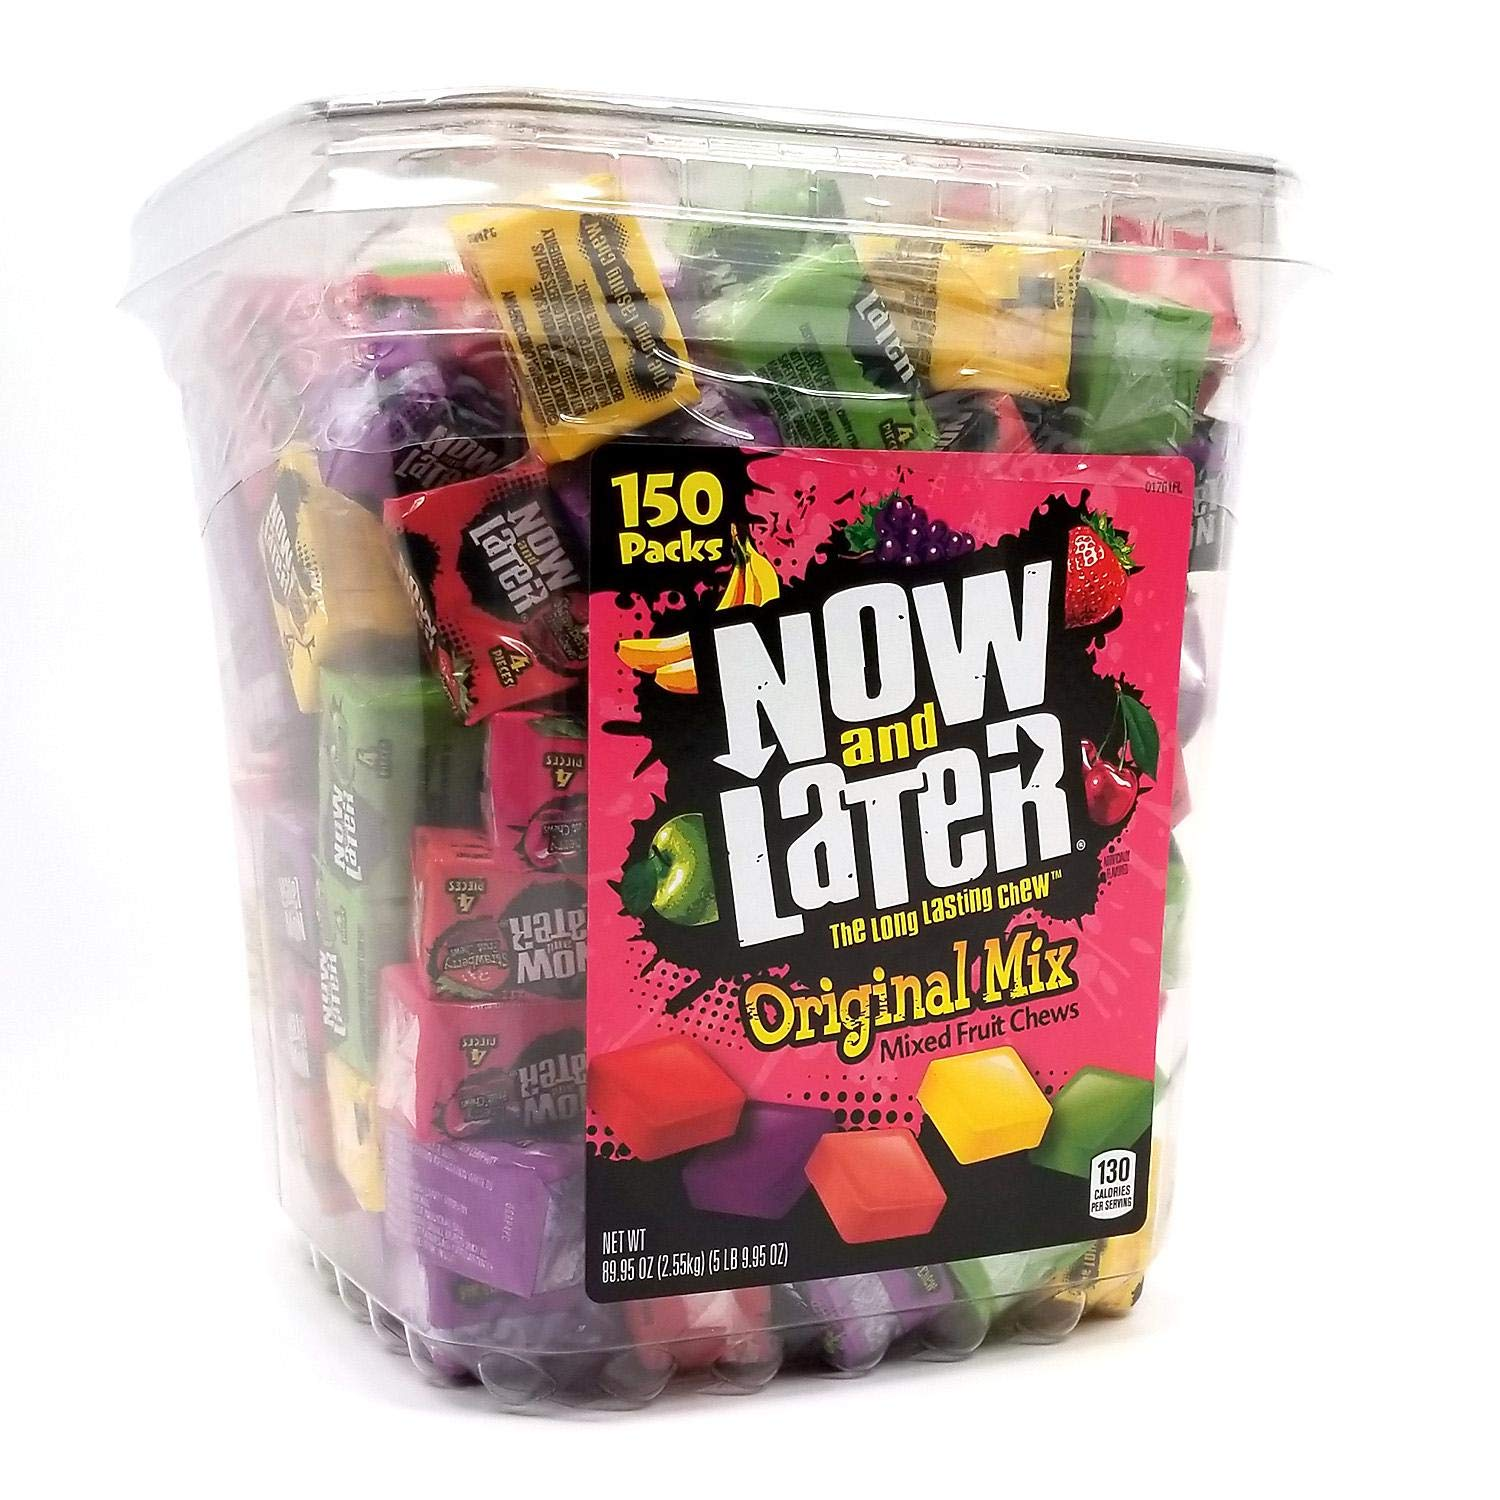 Now & Later Original Taffy Chews Candy, Assorted, 150 Count Chews, 90 Ounce Jar by Now and Later (Image #1)